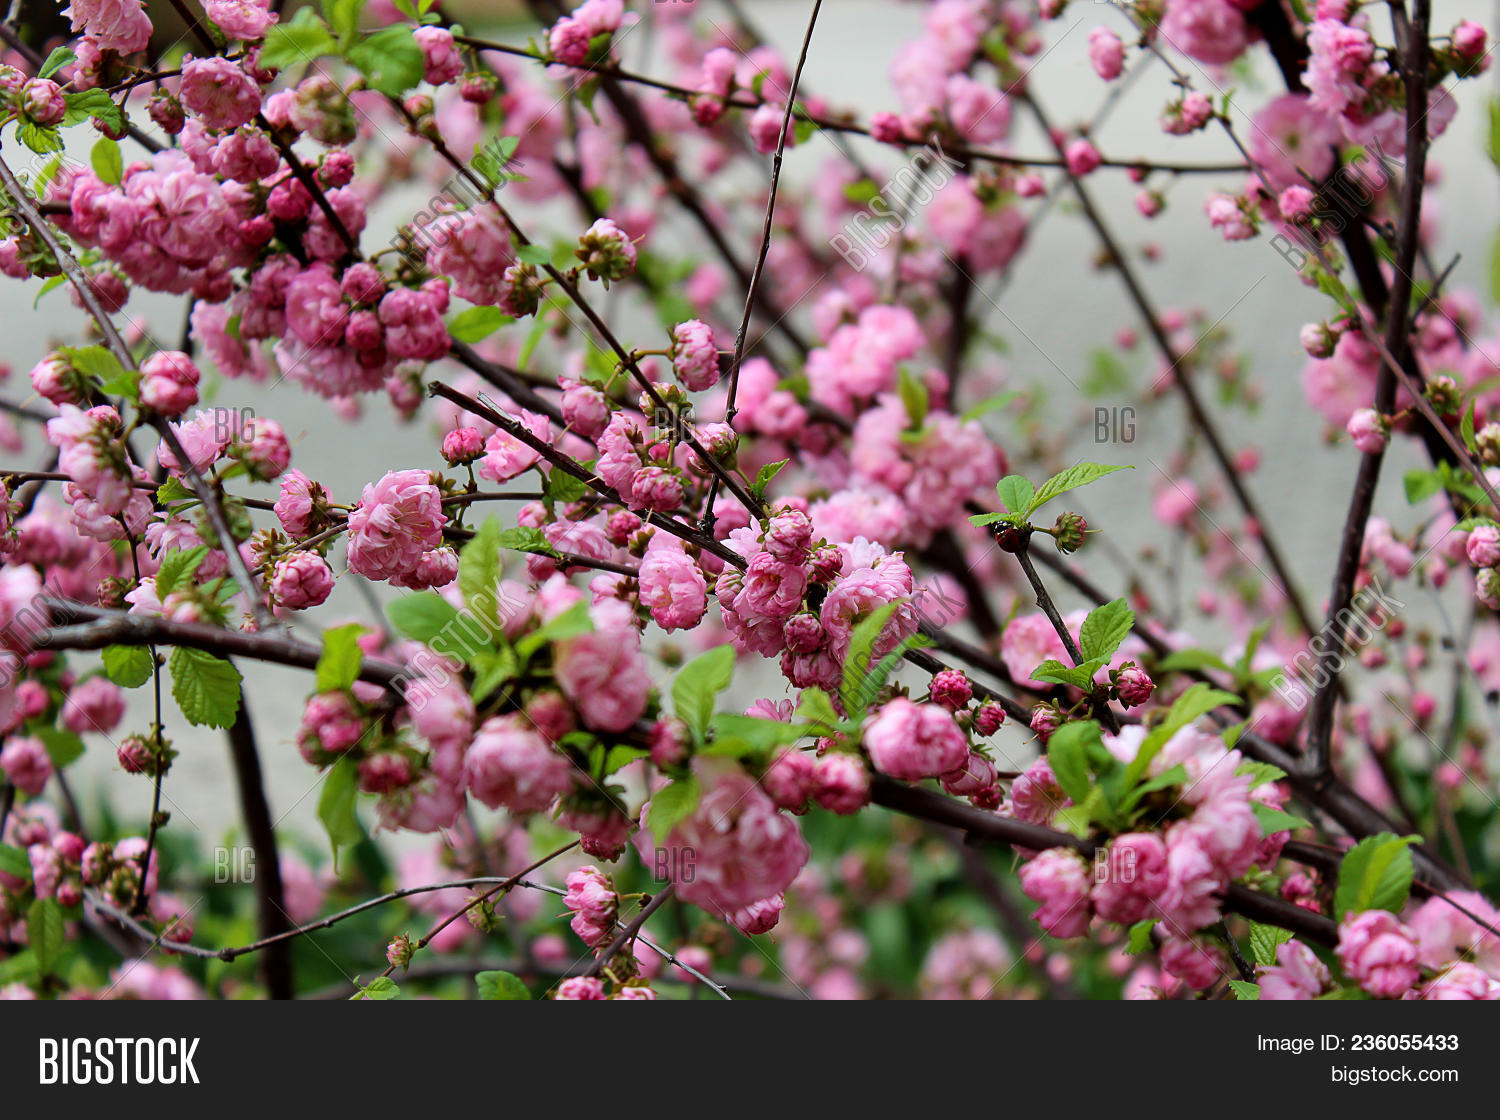 Prunus Triloba Louiseania Blossoms Many Bright Pink Flowers Are